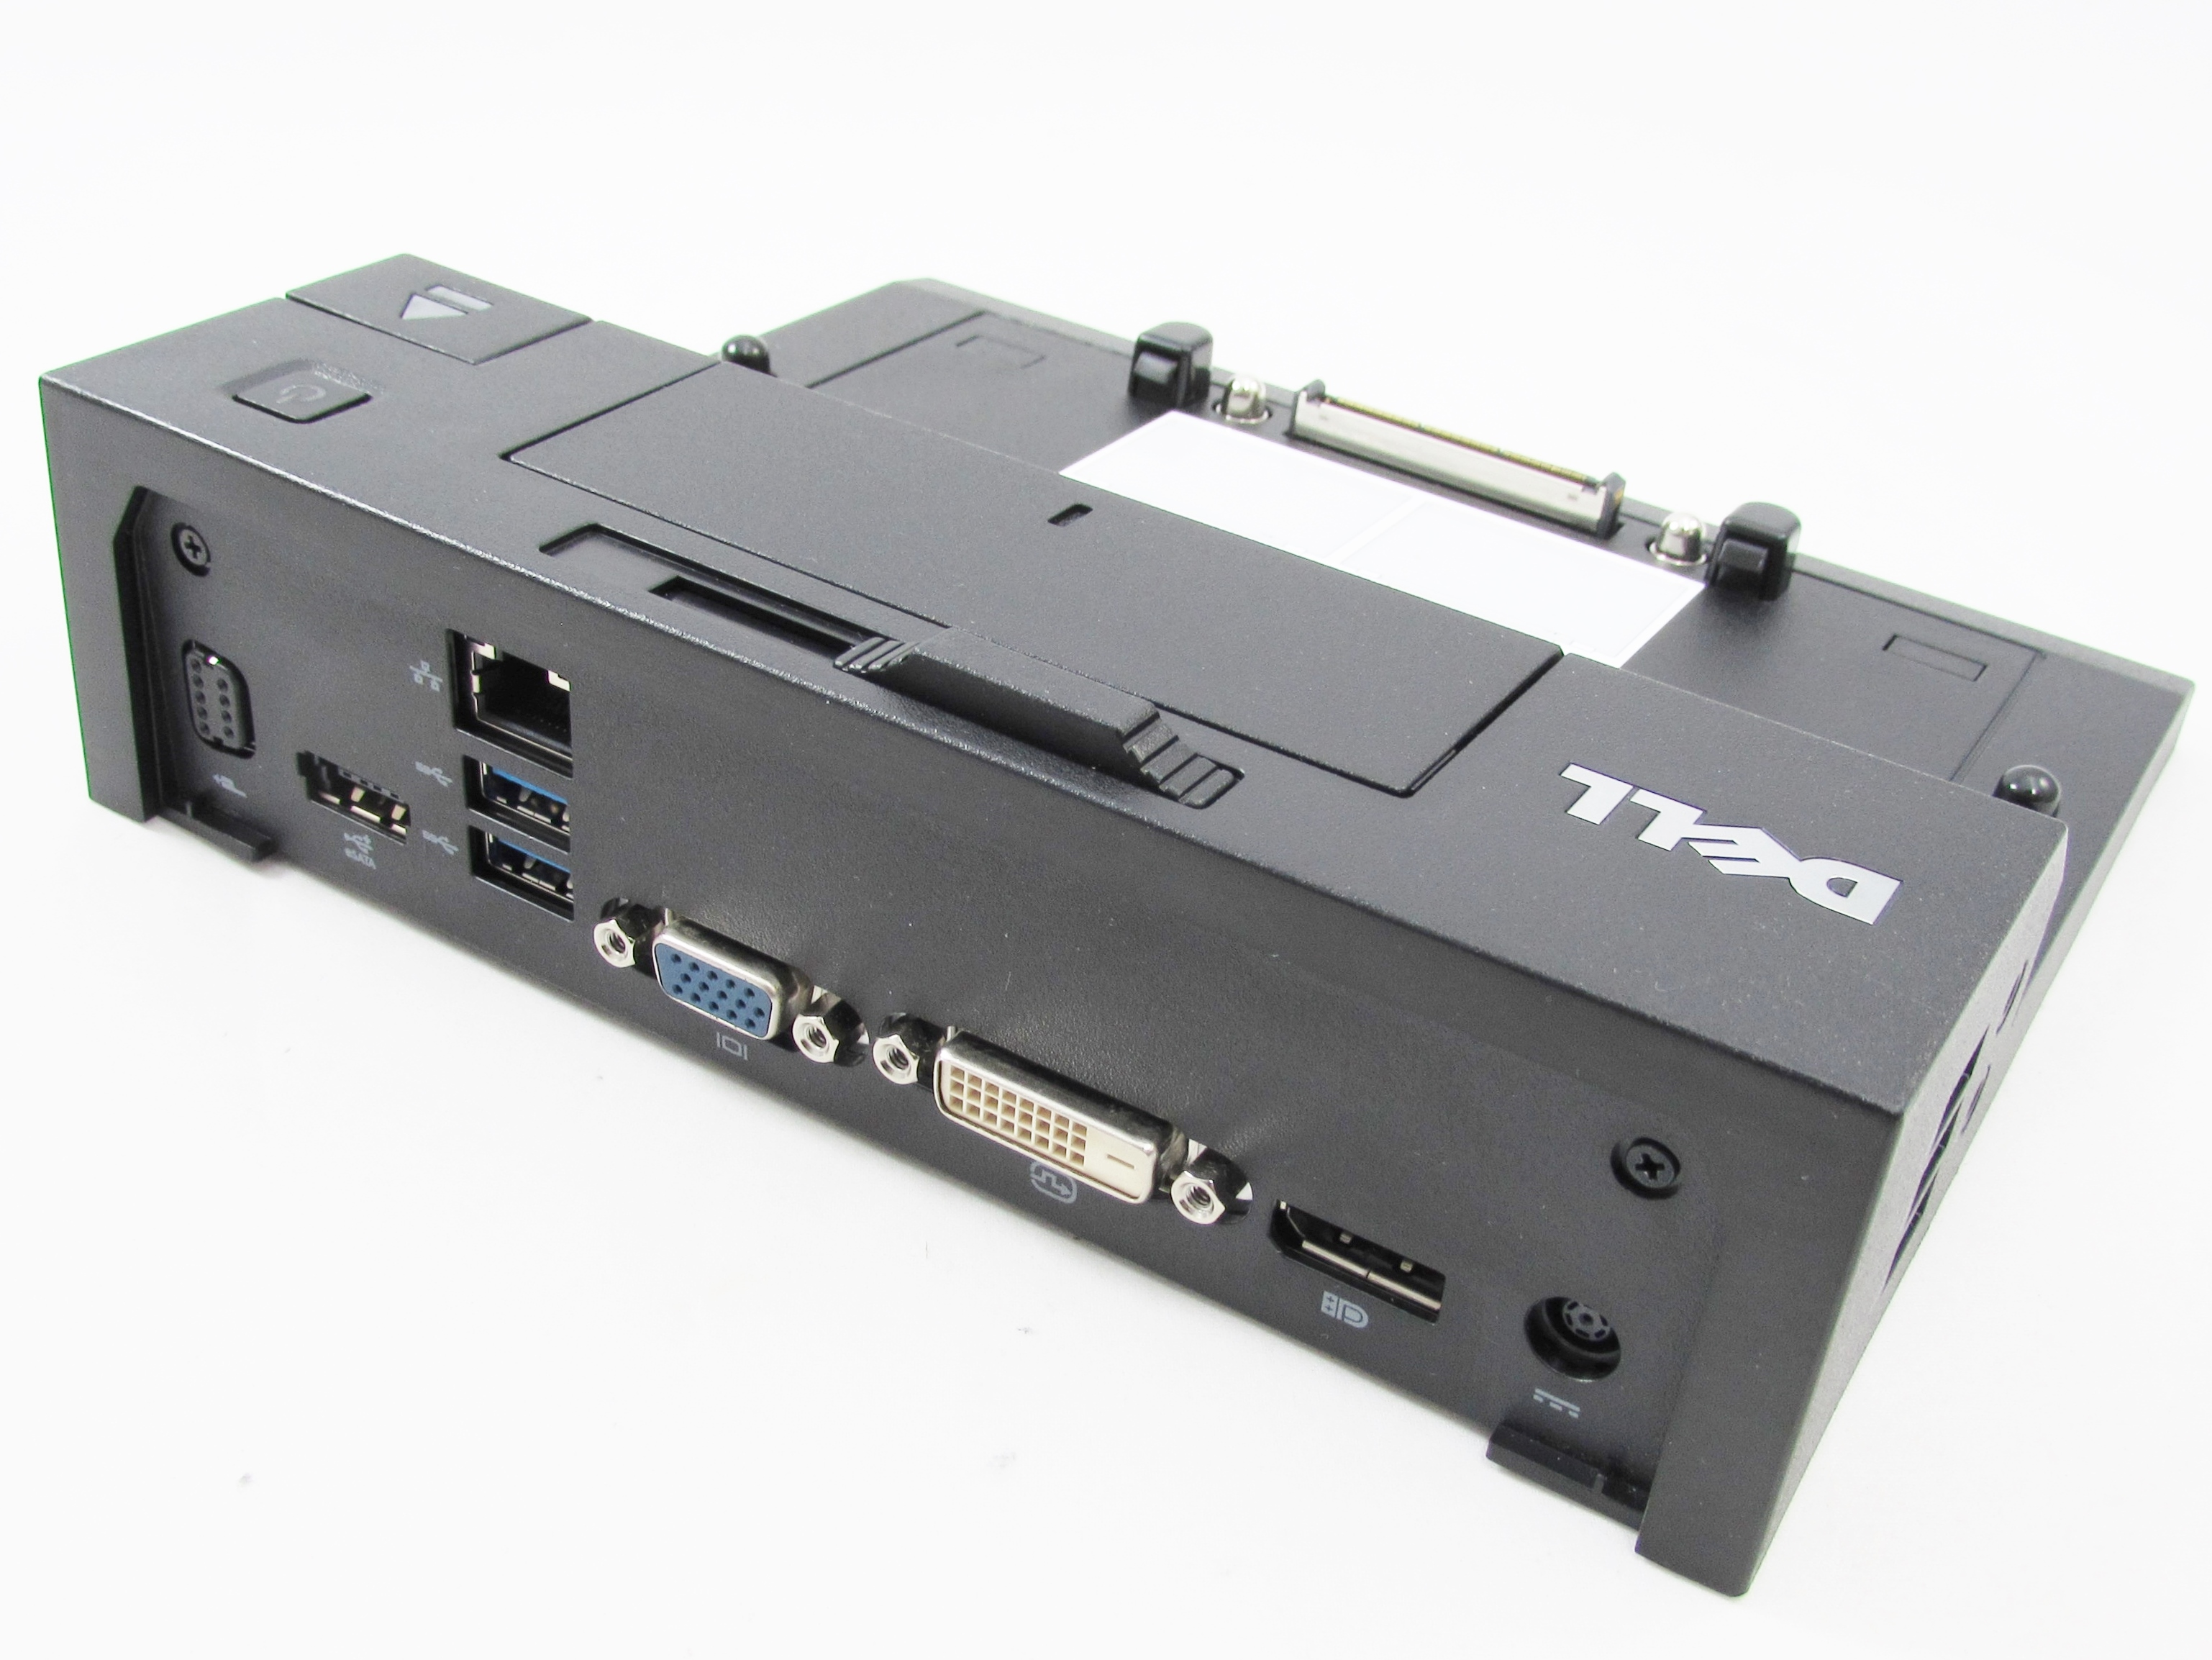 Details about Dell Precision 7520 Simple Docking Station Port Replicator  USB 3 0 w/ Spacer